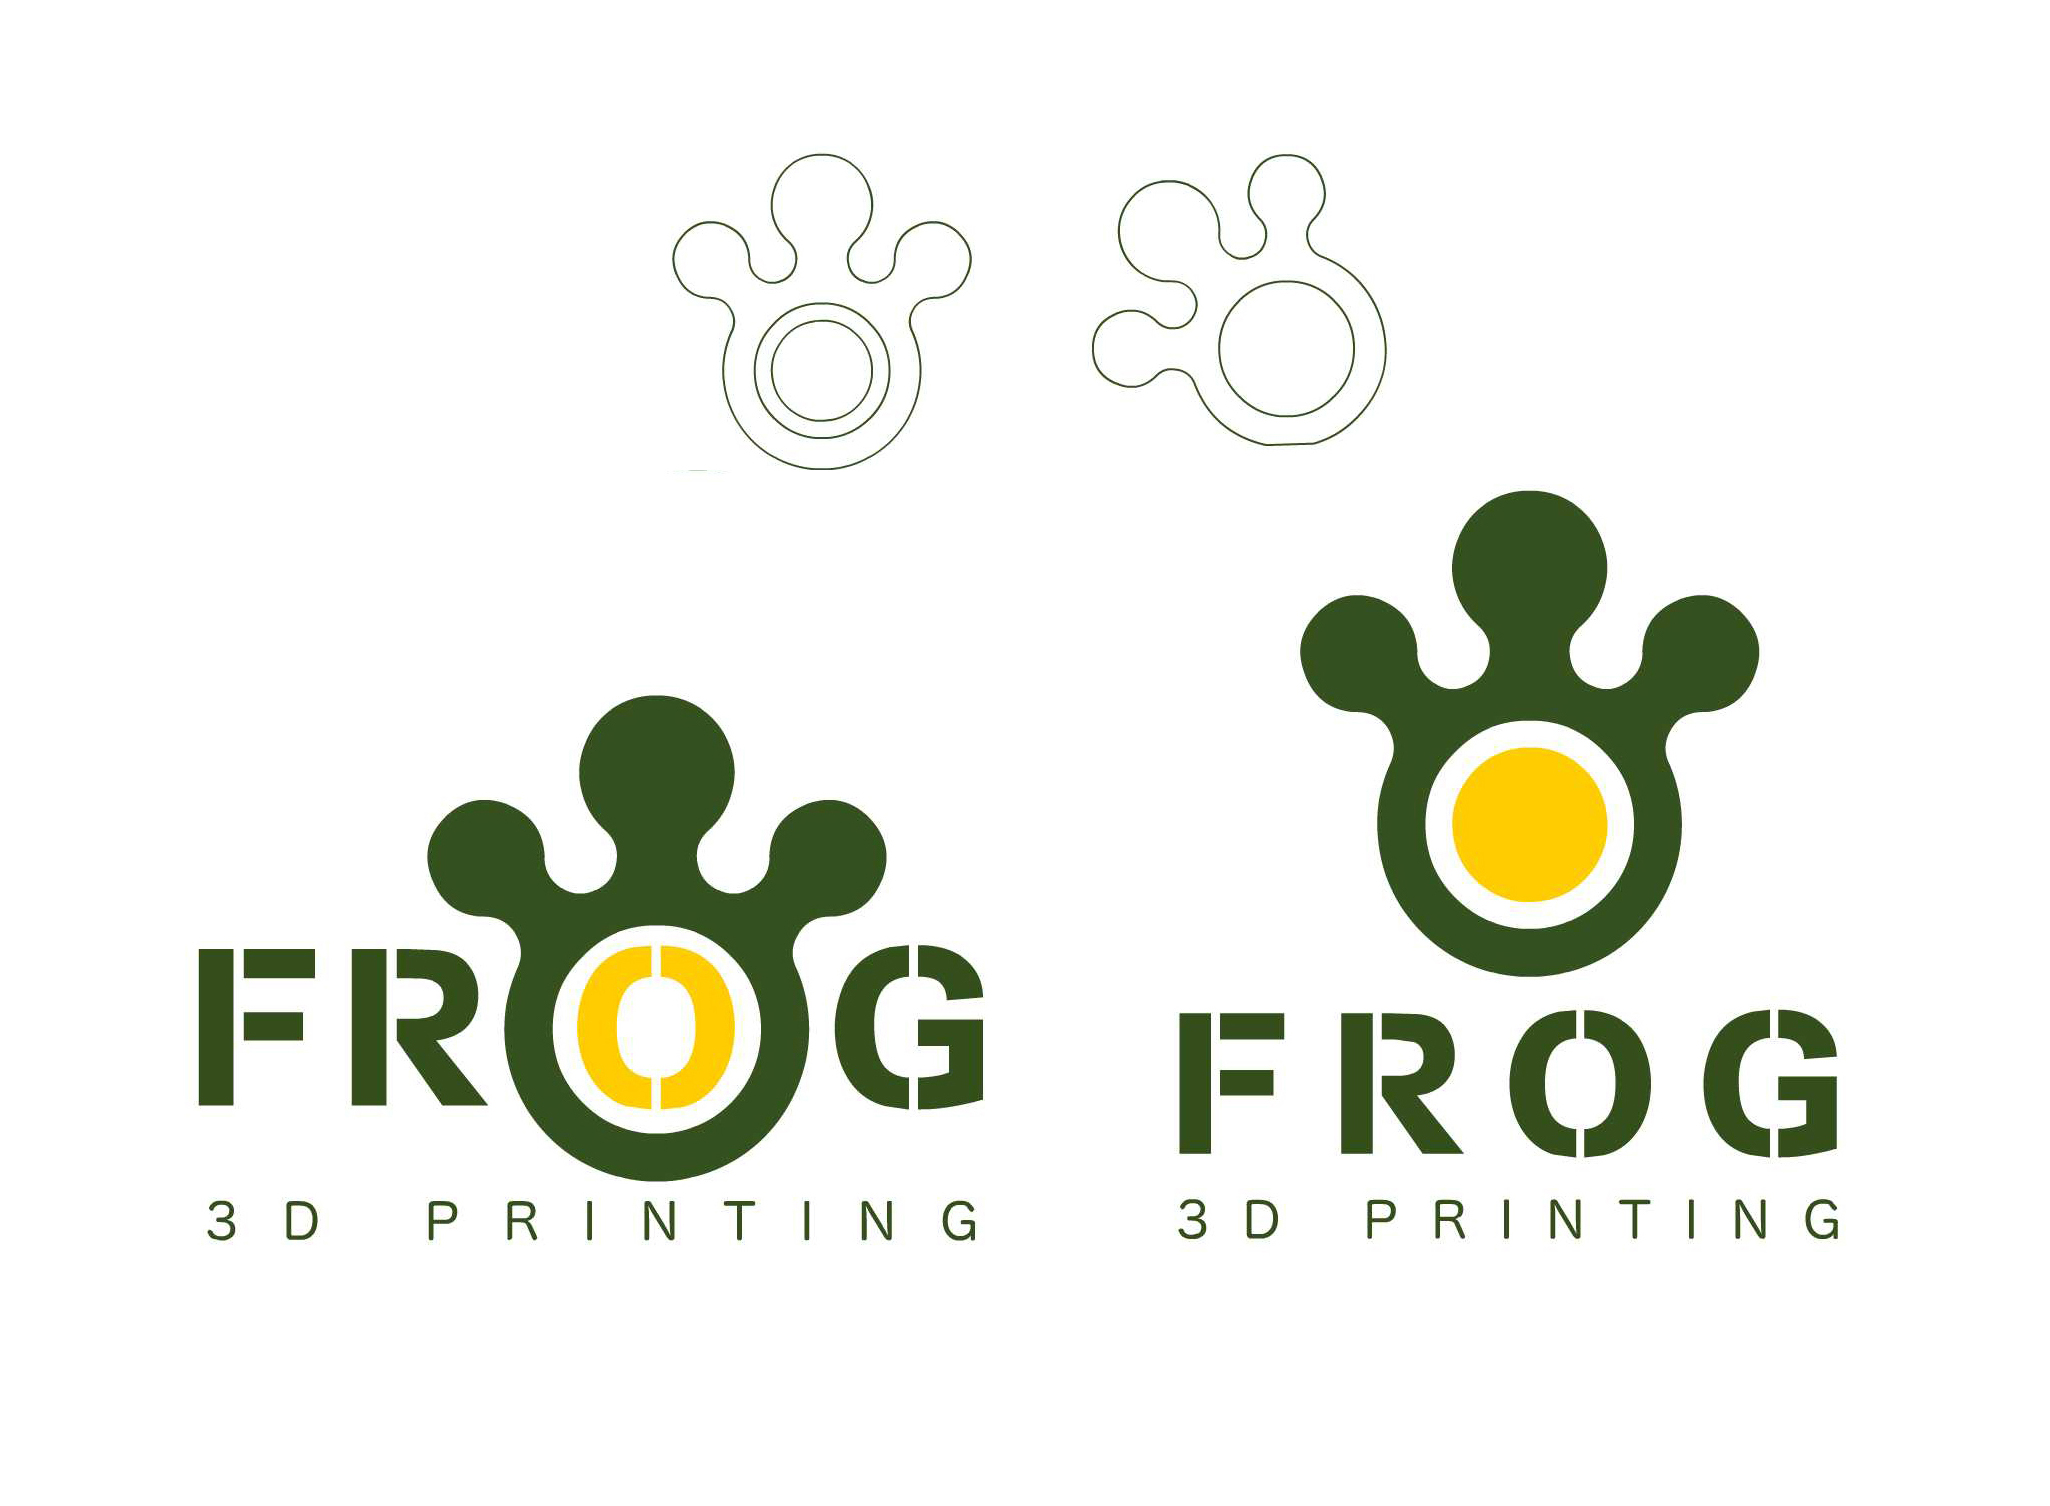 Cliente: Frog 3D Printing